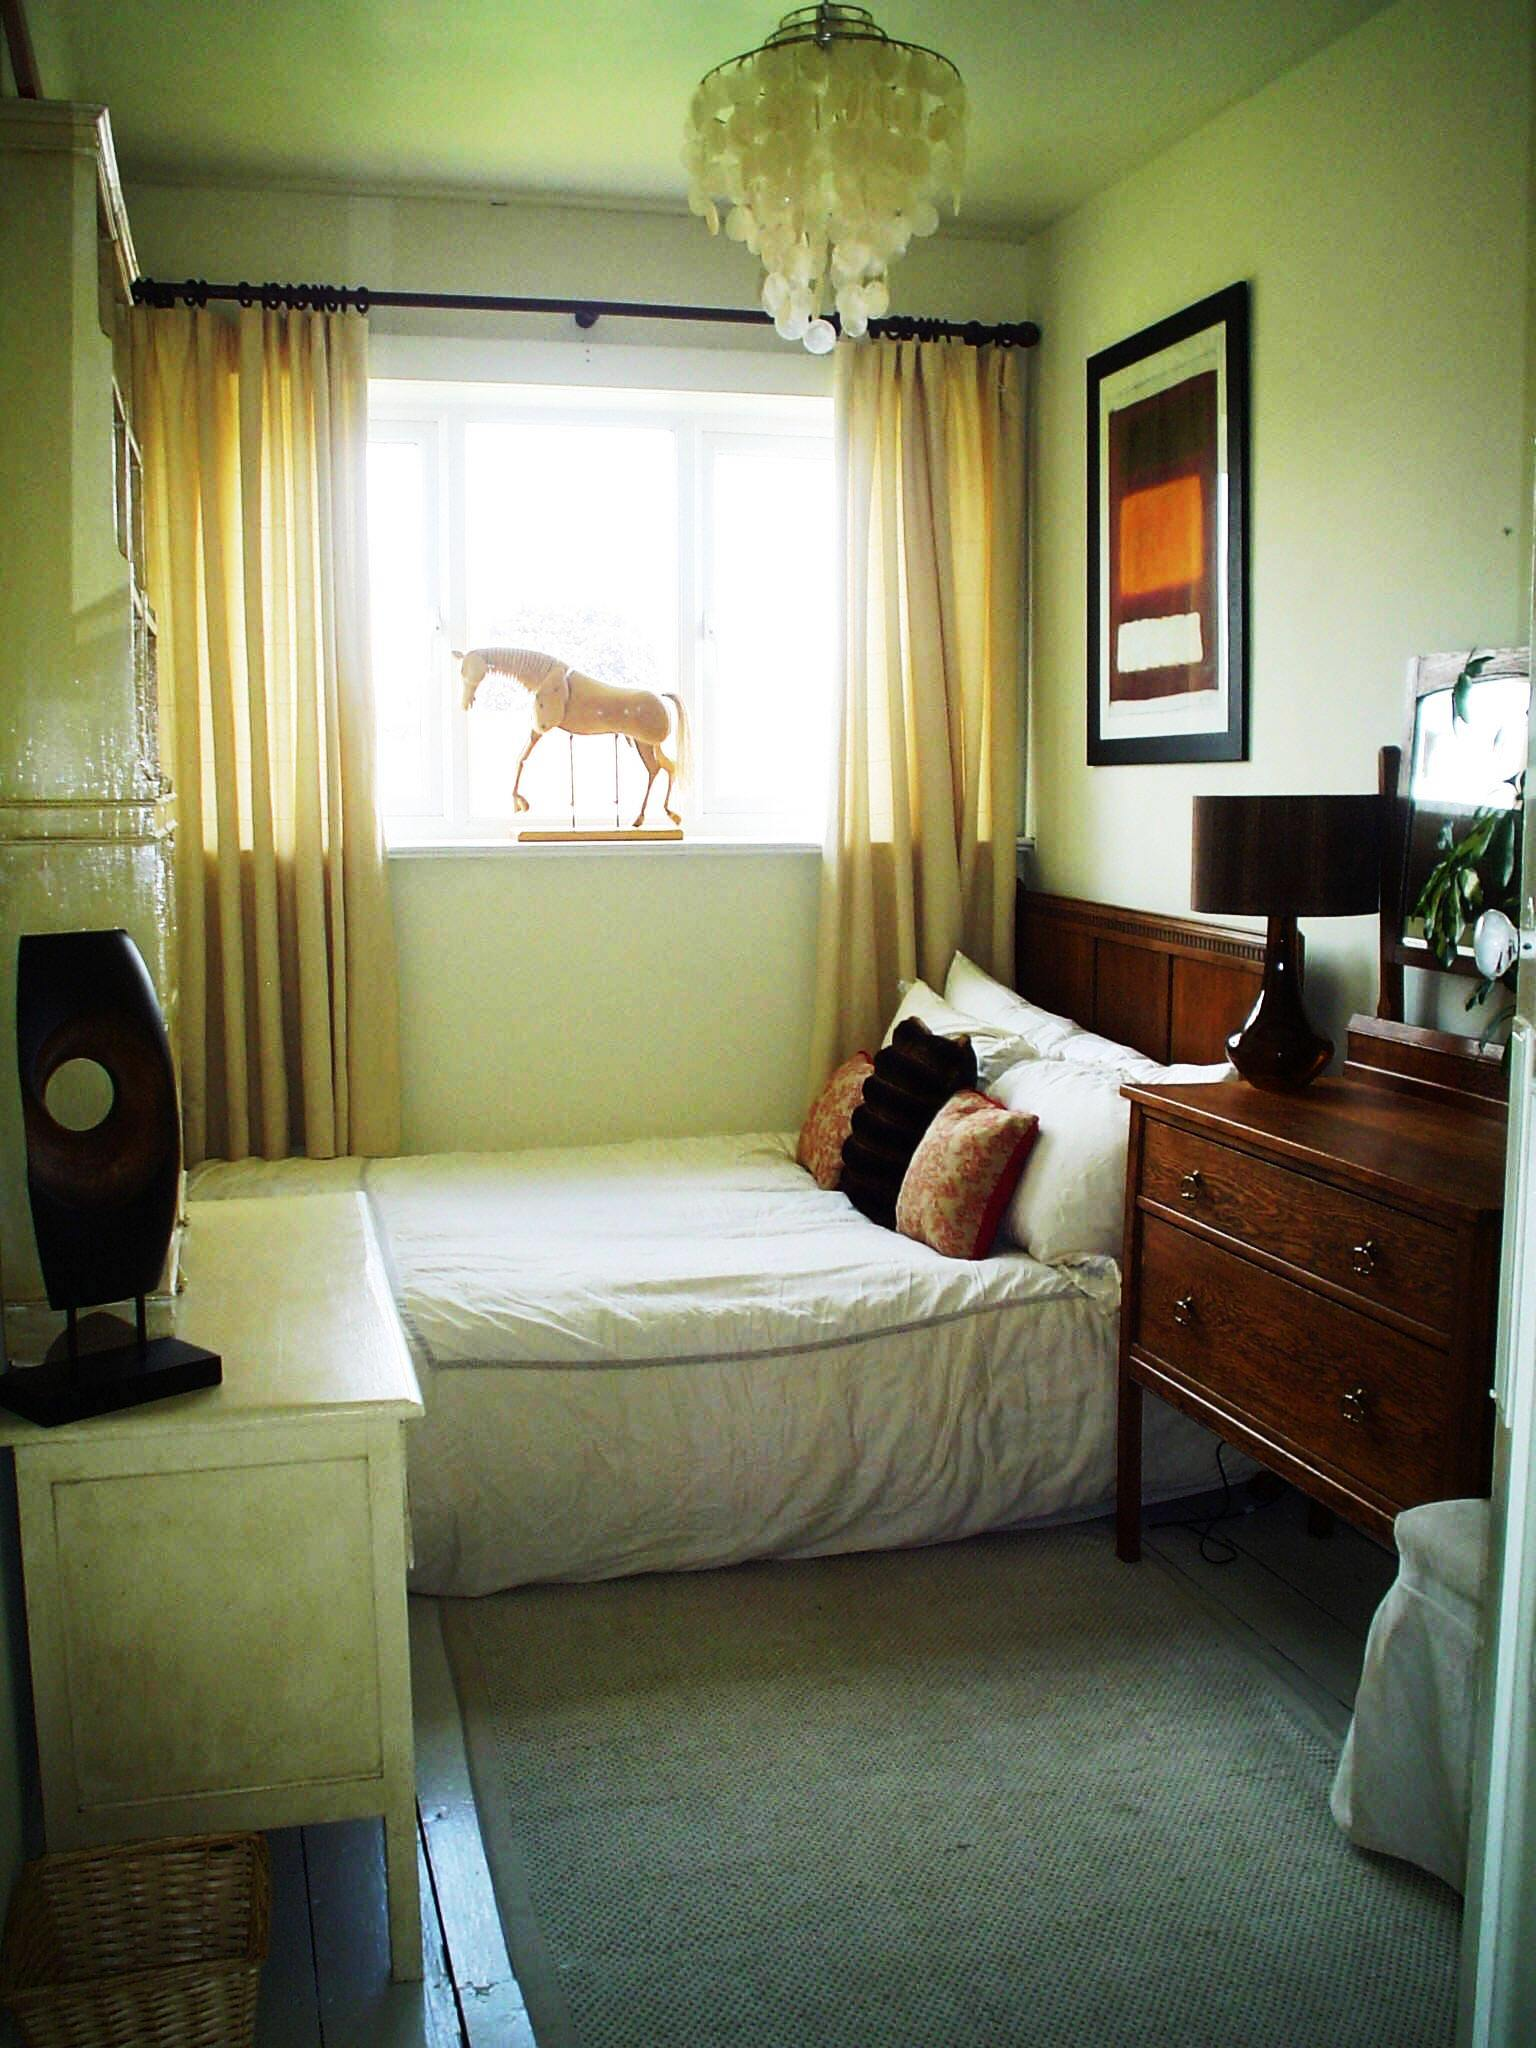 30 Small Bedroom Interior Designs Created to Enlargen Your ... on Small Room Ideas  id=66143